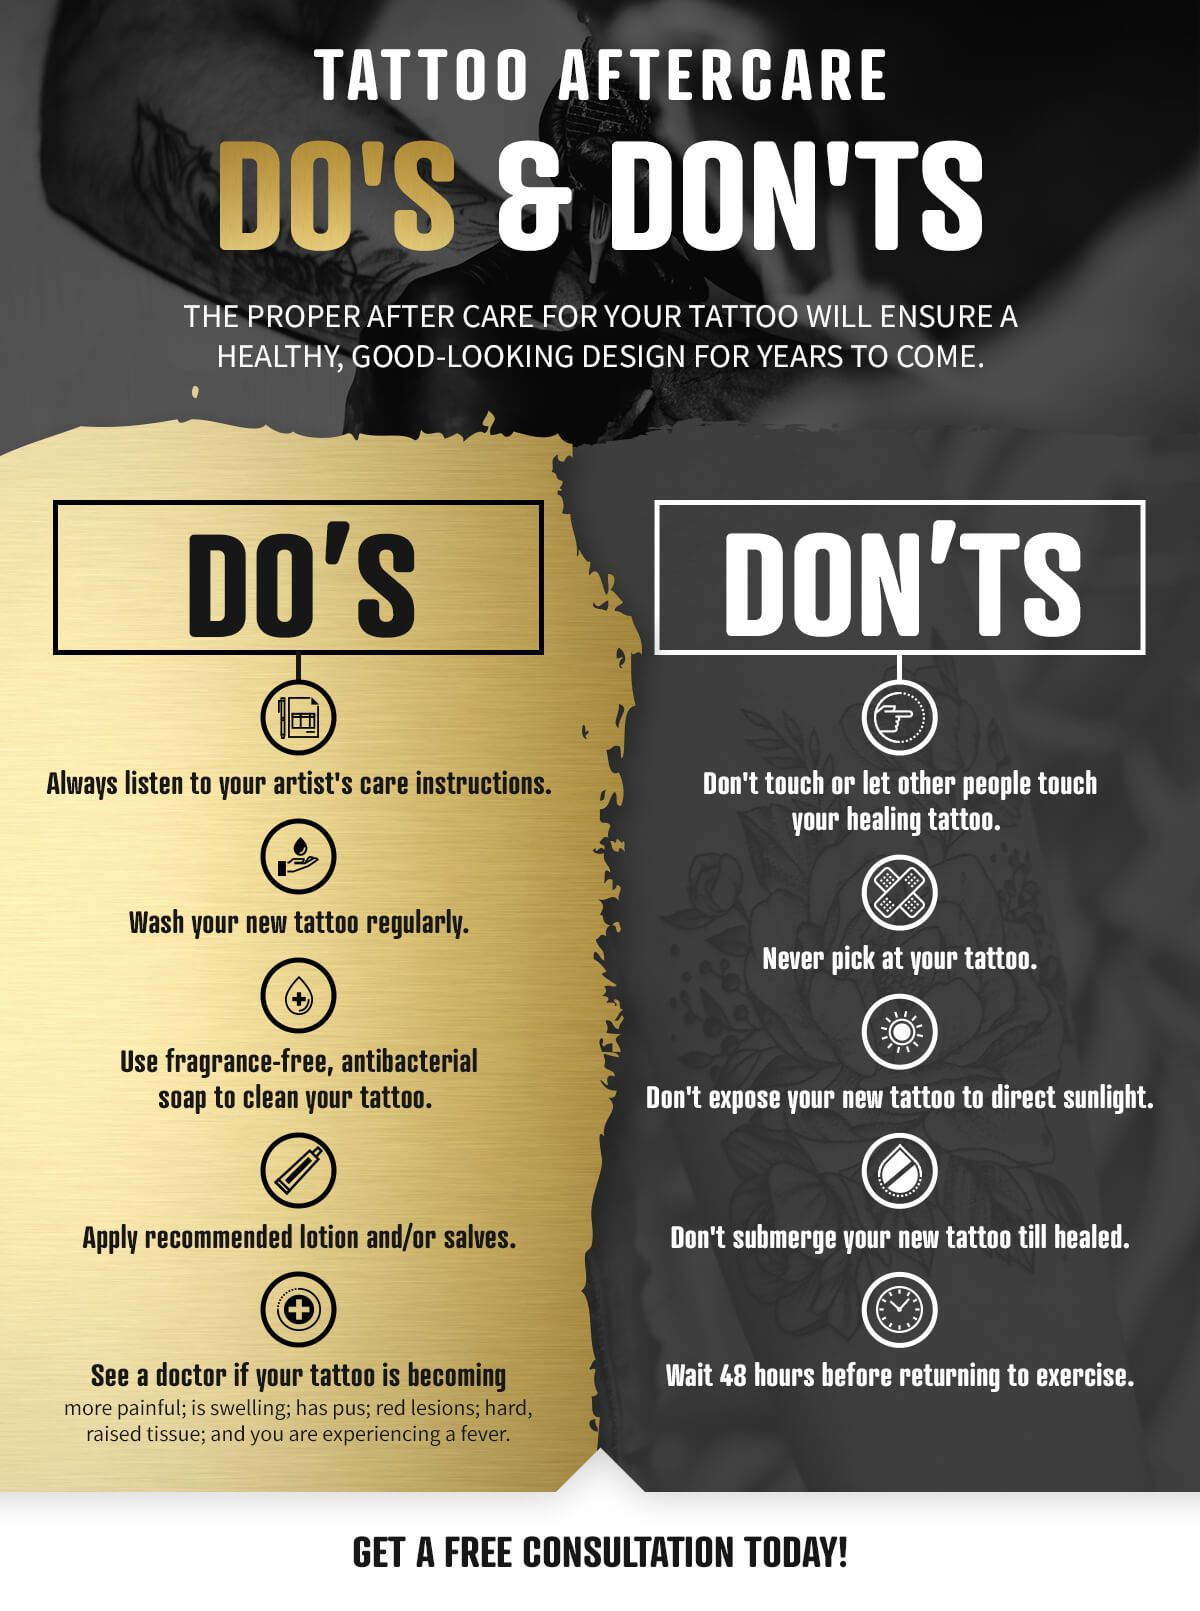 Tattoo Aftercare Do's & Don'tsTattoo Aftercare Do's & Don'ts